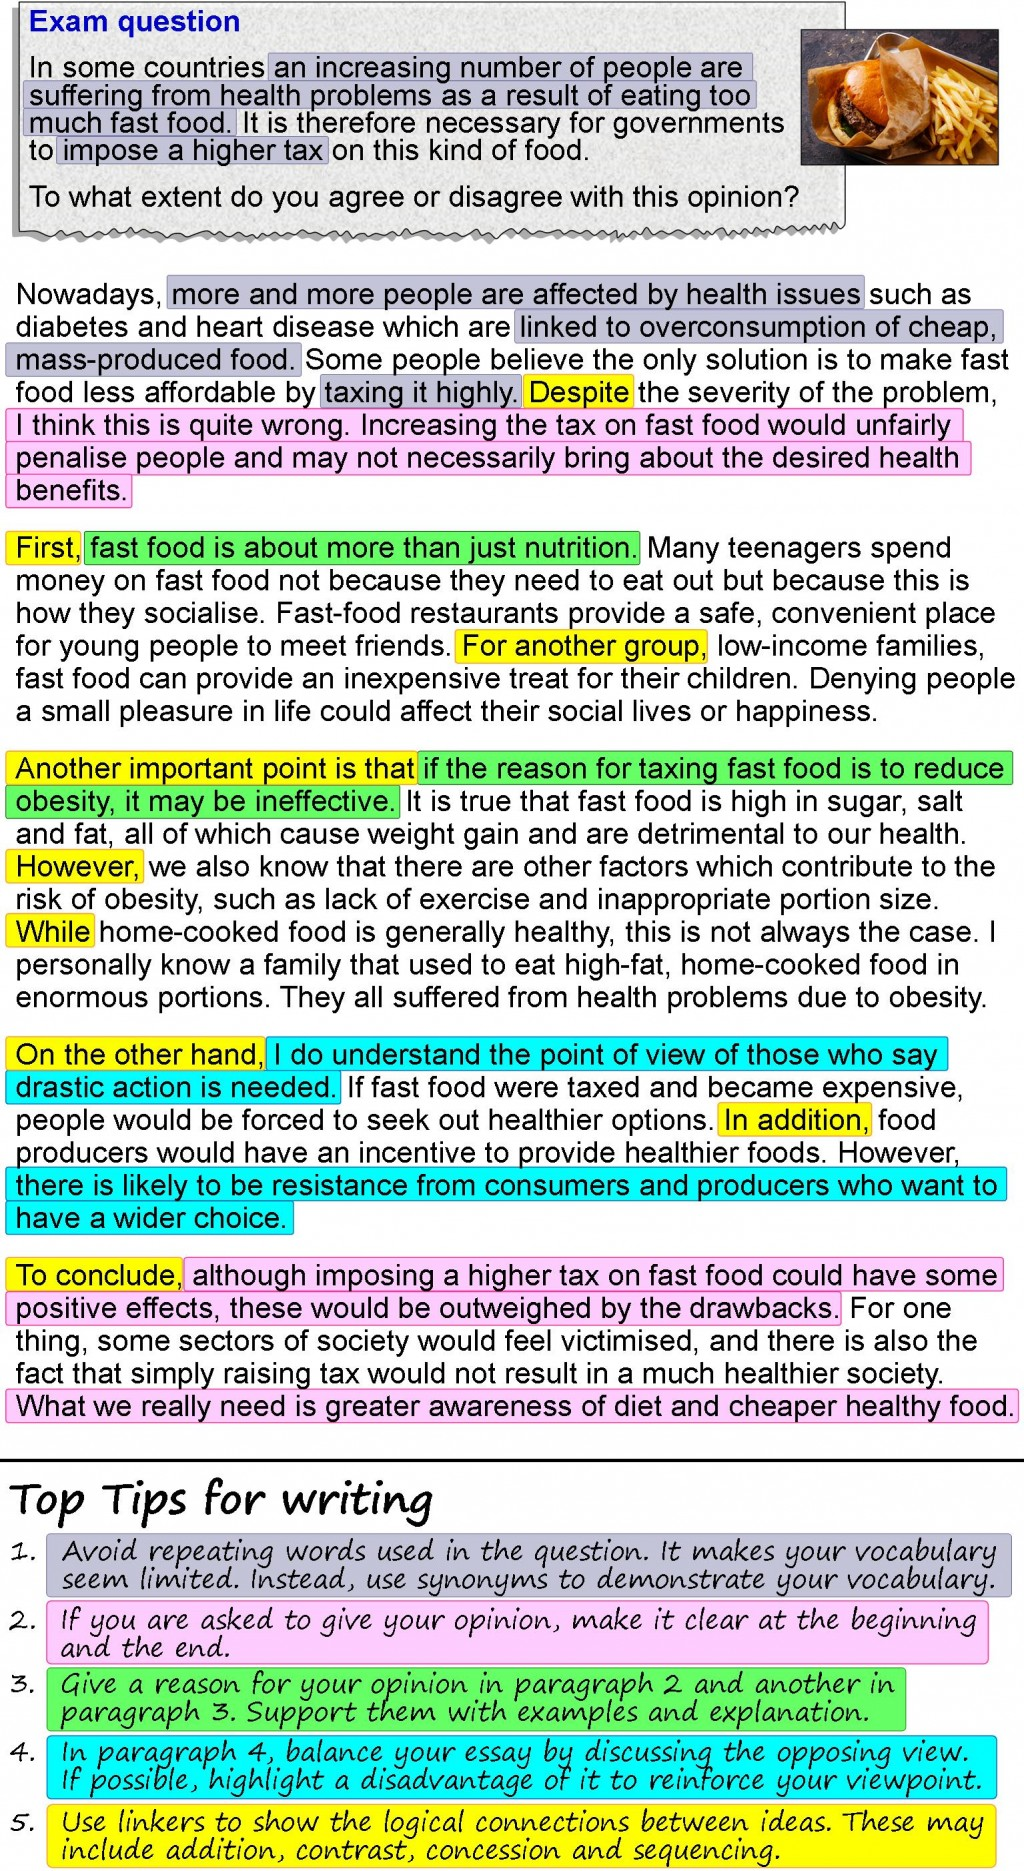 001 Essay Example Fast Food Culture An Opinion About 4 Frightening In Tamil India Large